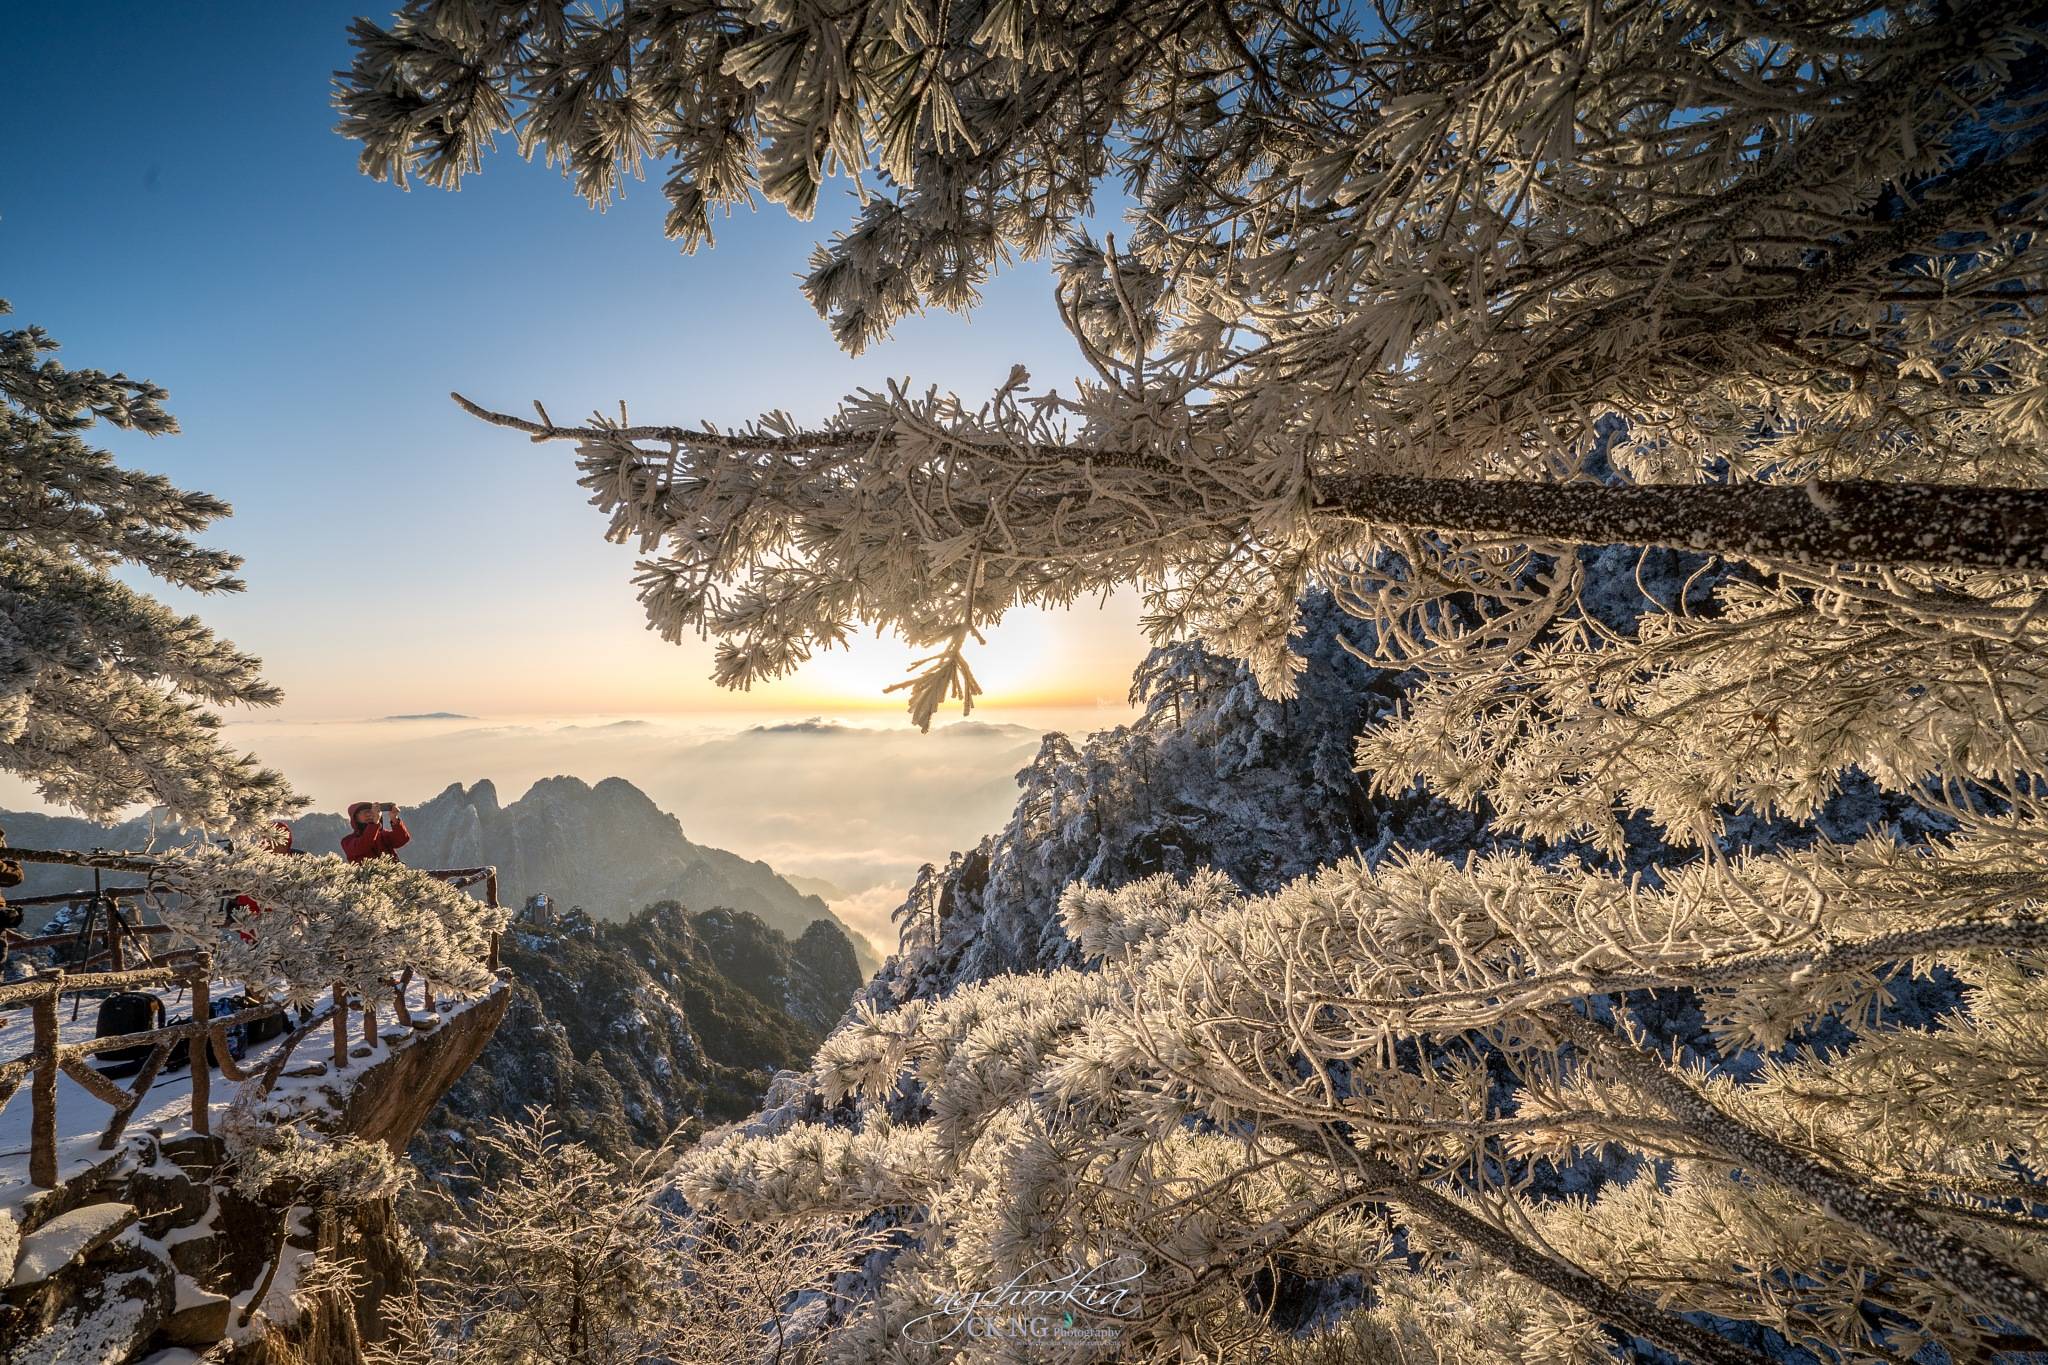 雪凇 Snow Yuki II 黃山-Huangshan-China  by chookia